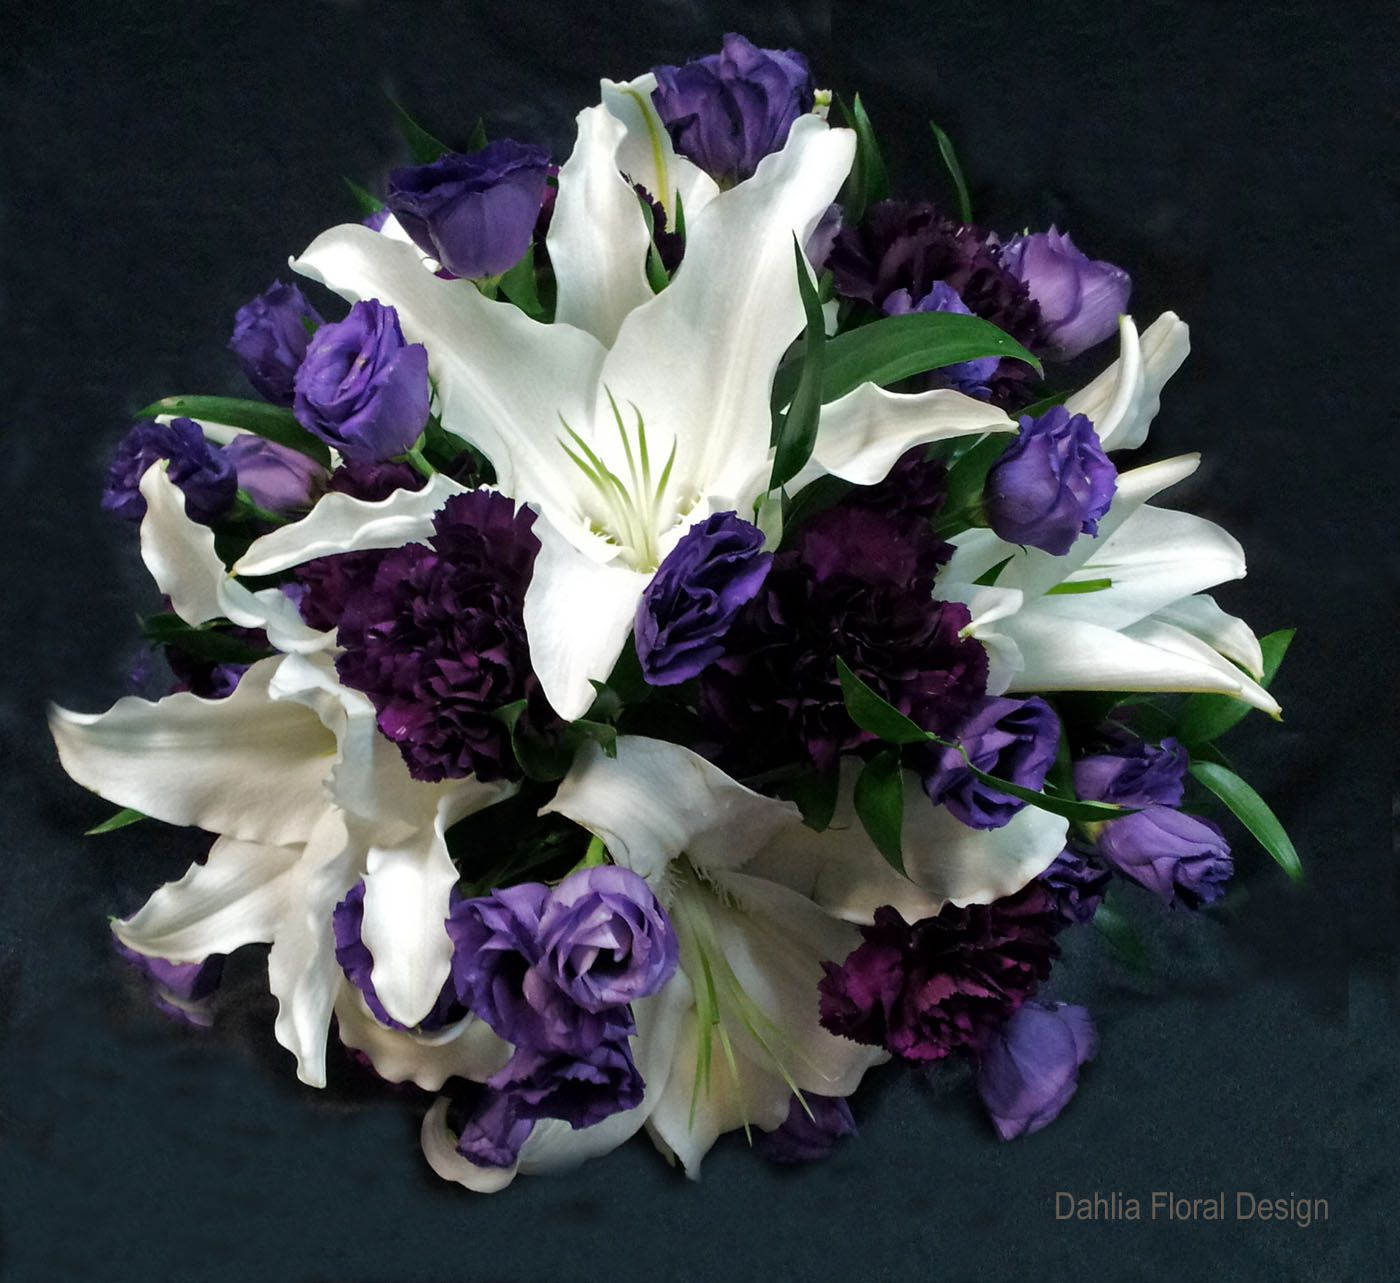 White lily with purple flowers calgary wedding flower bridal party white lily with purple flowers calgary wedding flower bridal party bouquet izmirmasajfo Choice Image